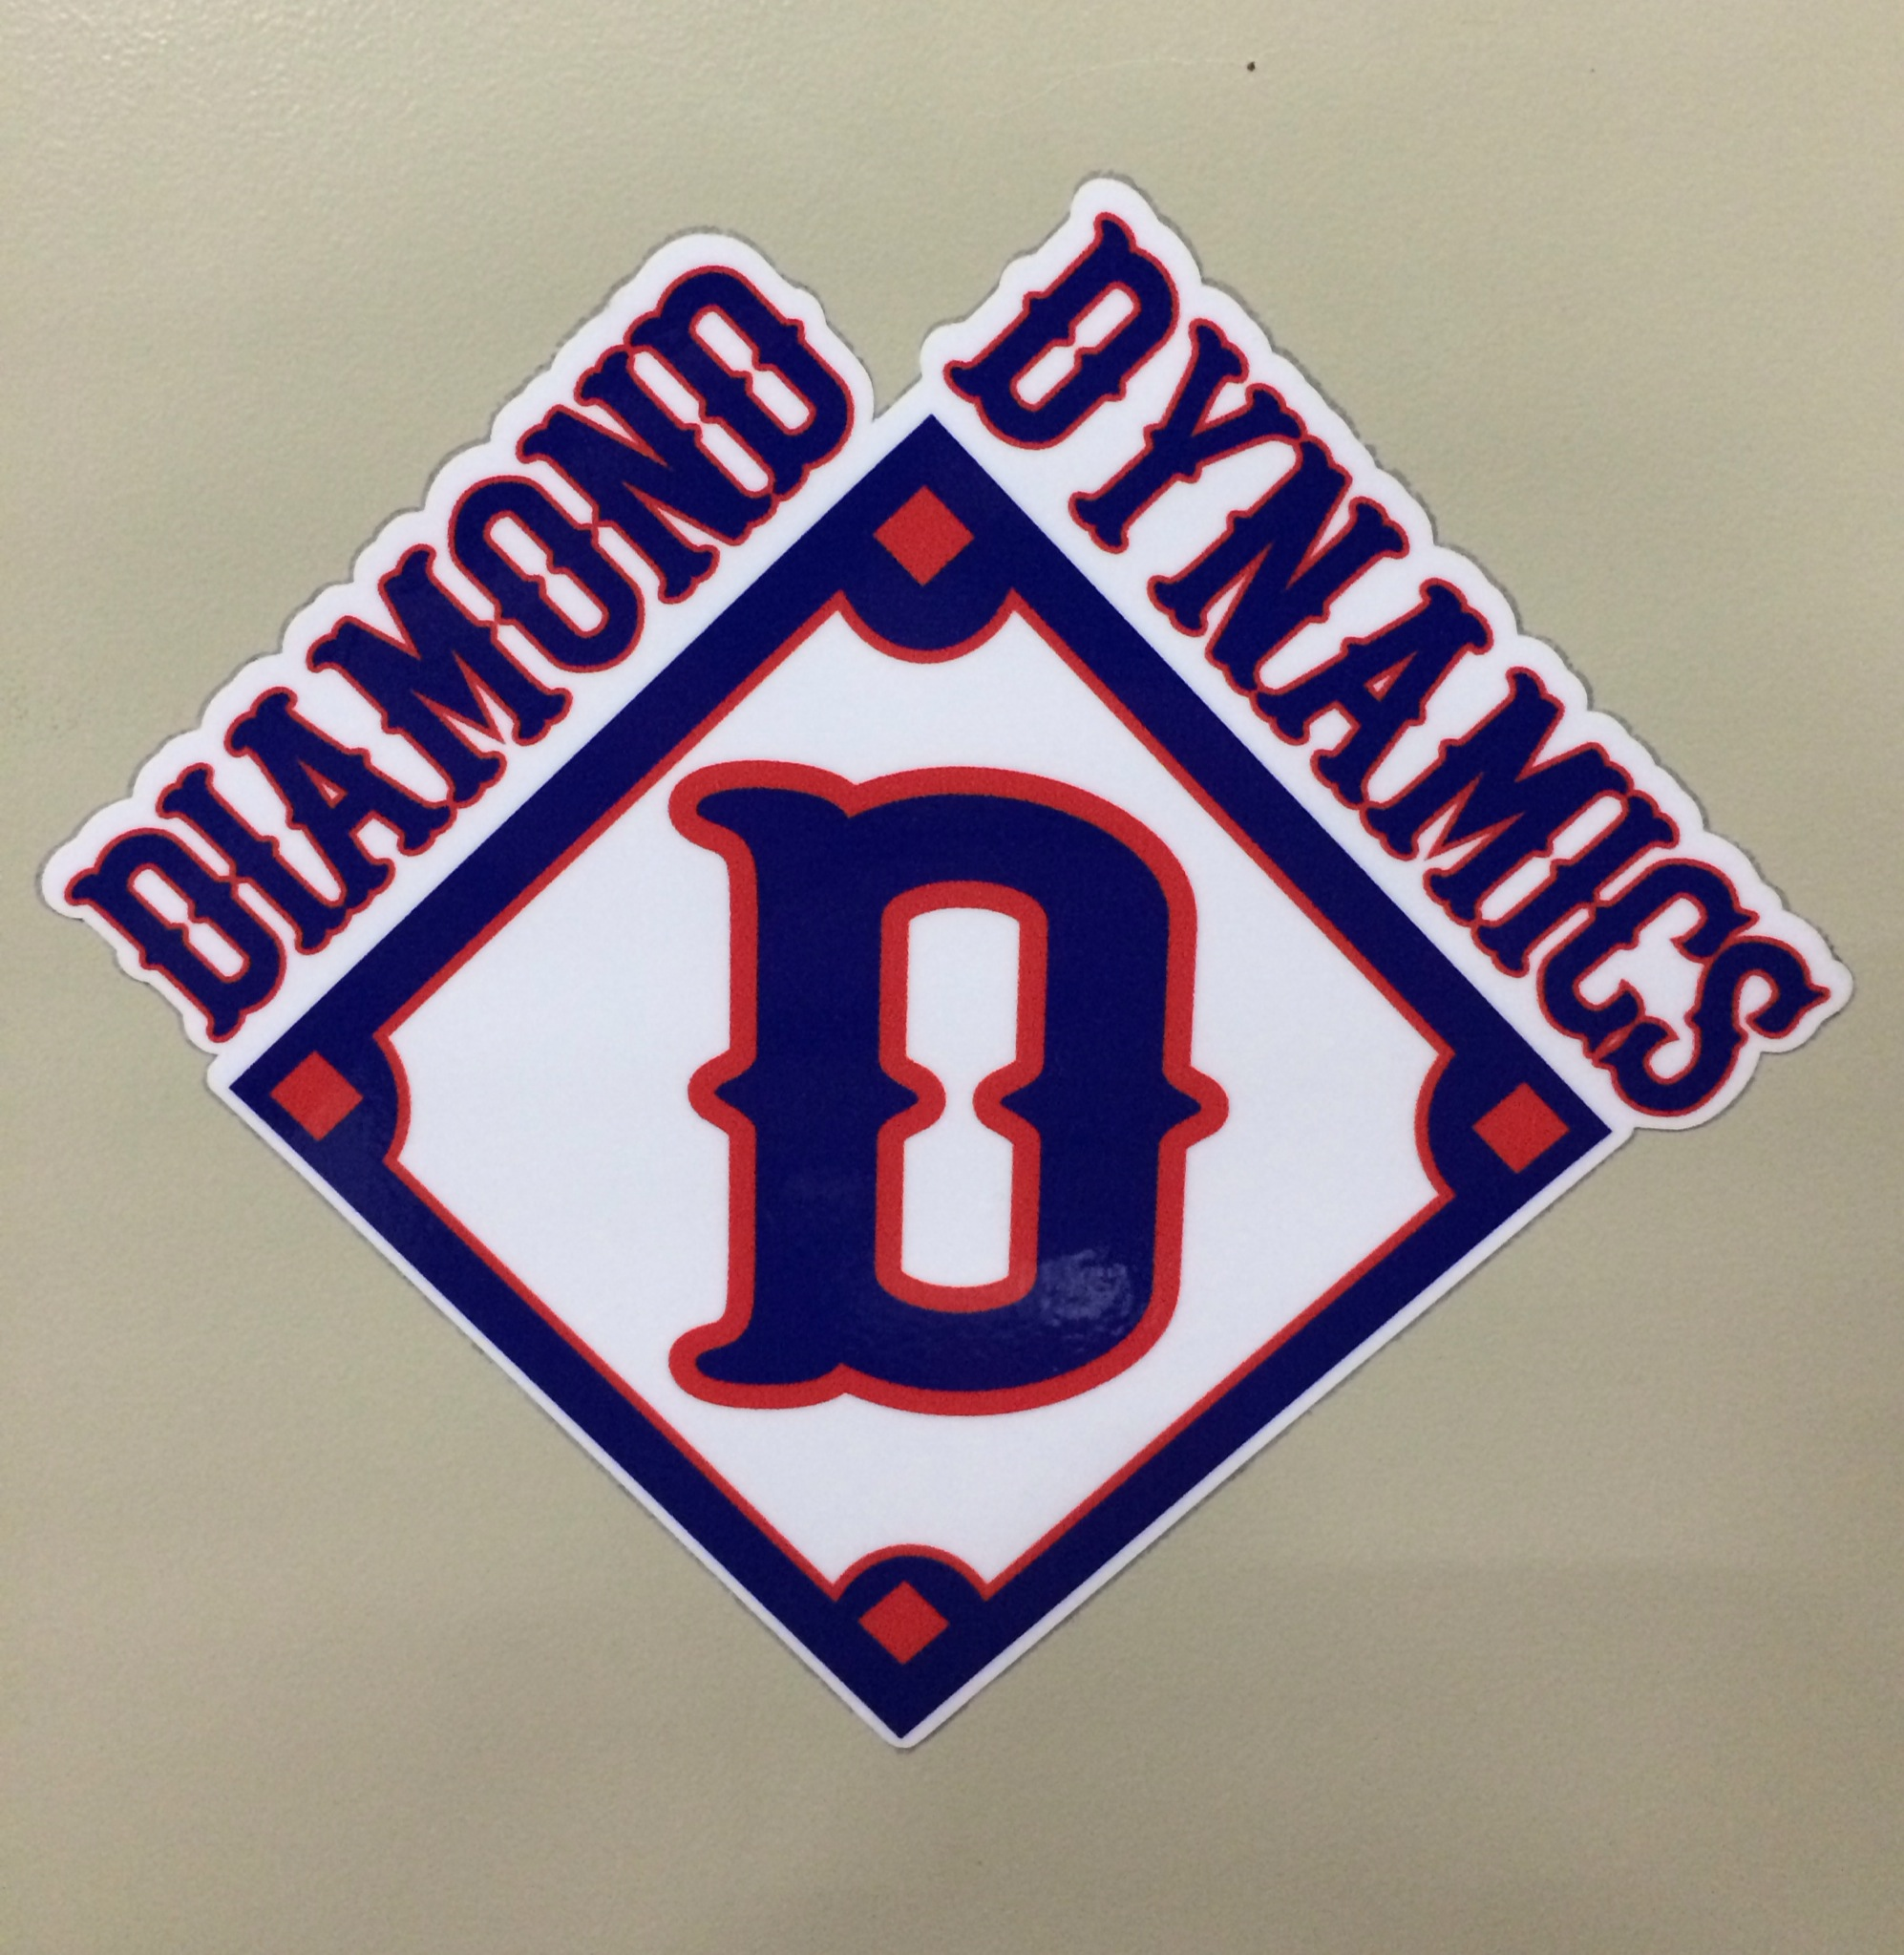 Diamond Dynamics Academy